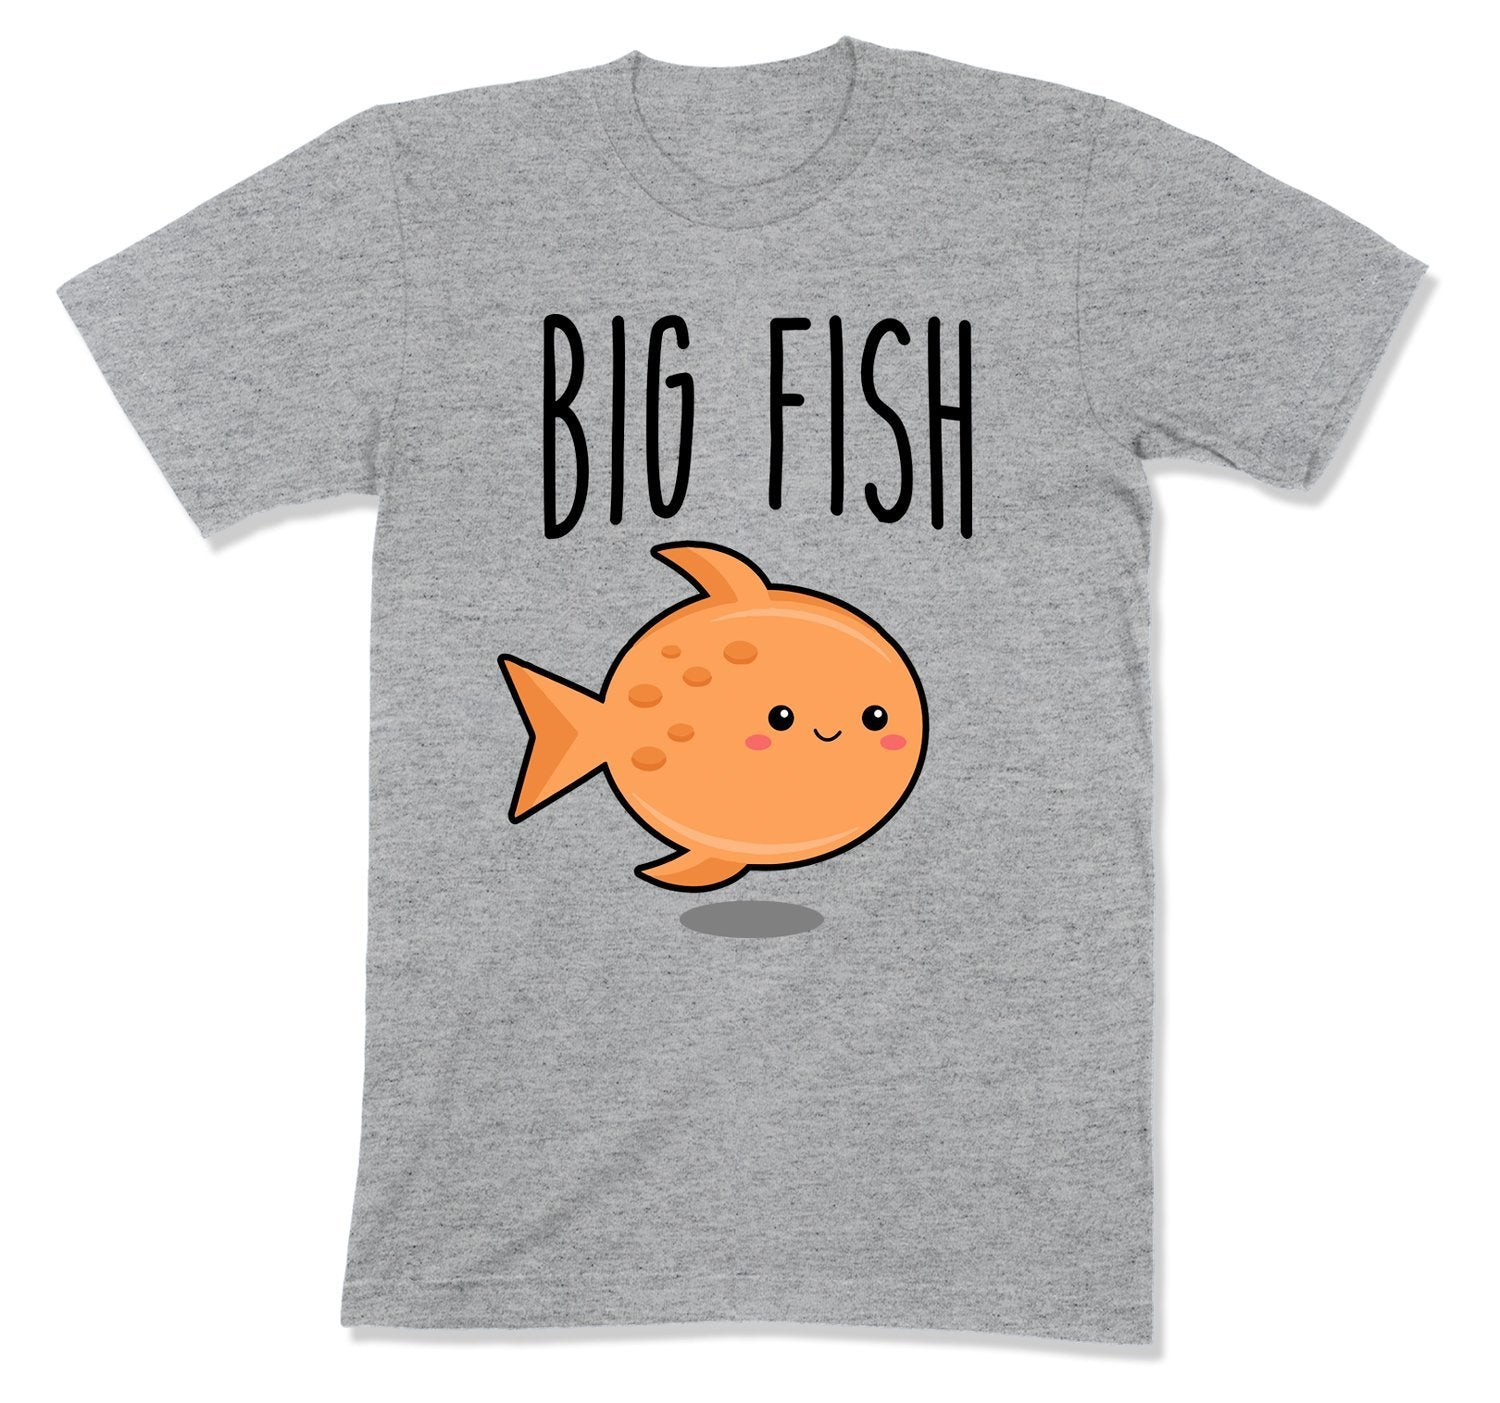 Big Fish / Small Fry